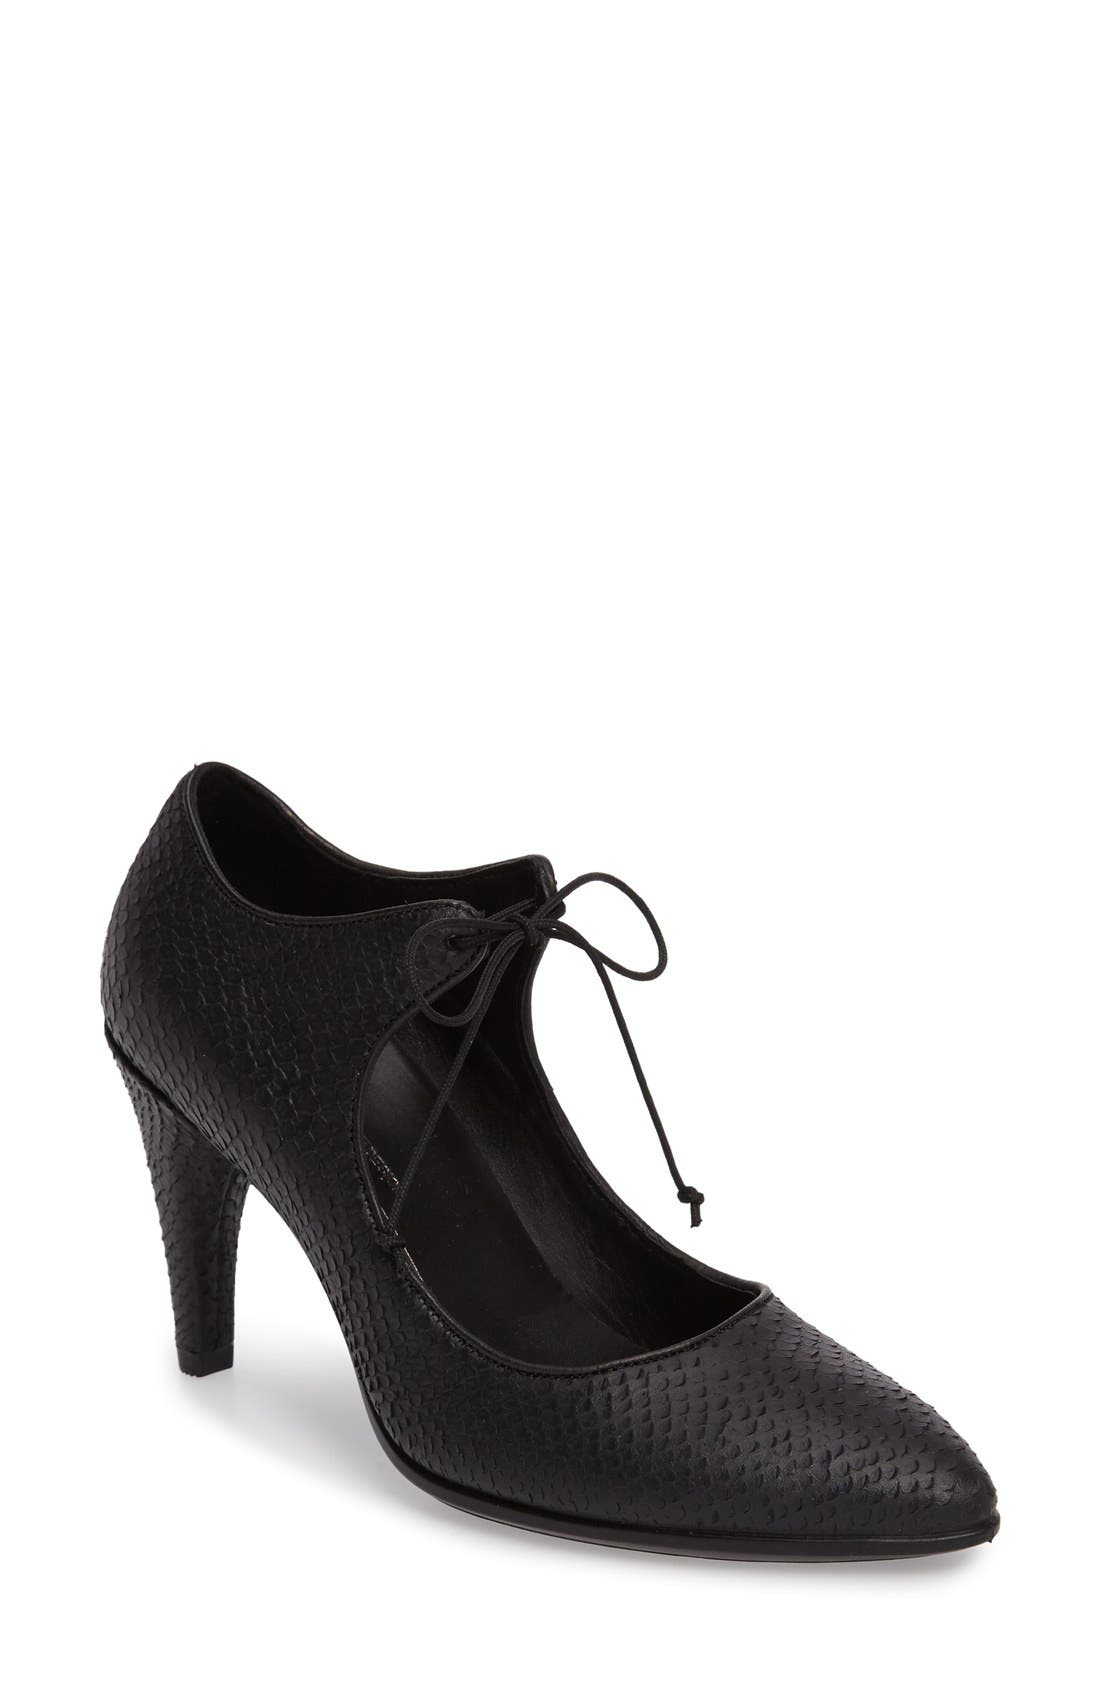 ECCO Shape 75 Lace-Up Mary Jane Pump (Women)